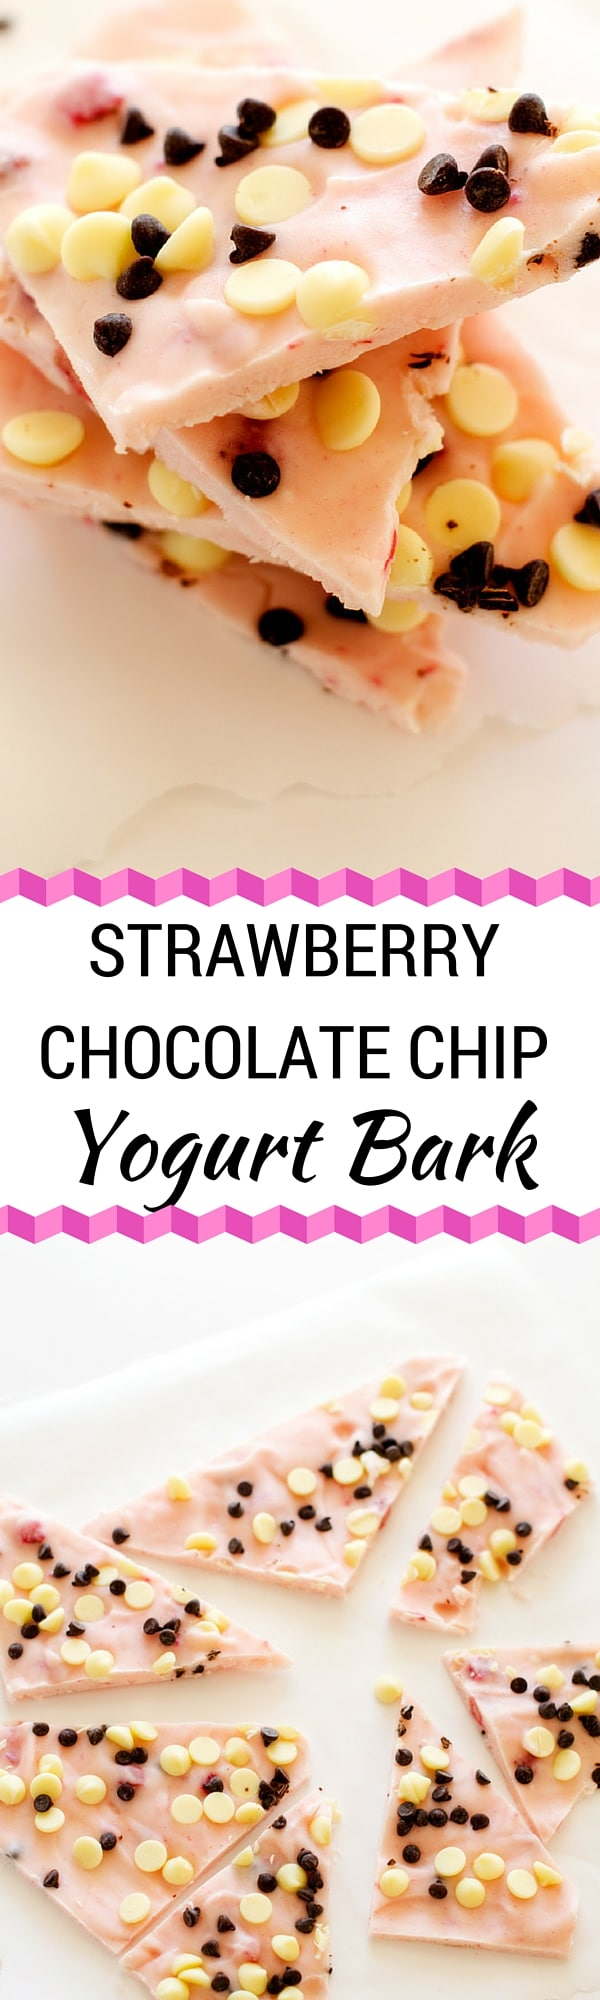 Strawberry Chocolate Chip Yogurt Bark - You won't believe how excited your kids get over this easy to make snack! - WendyPolisi.com